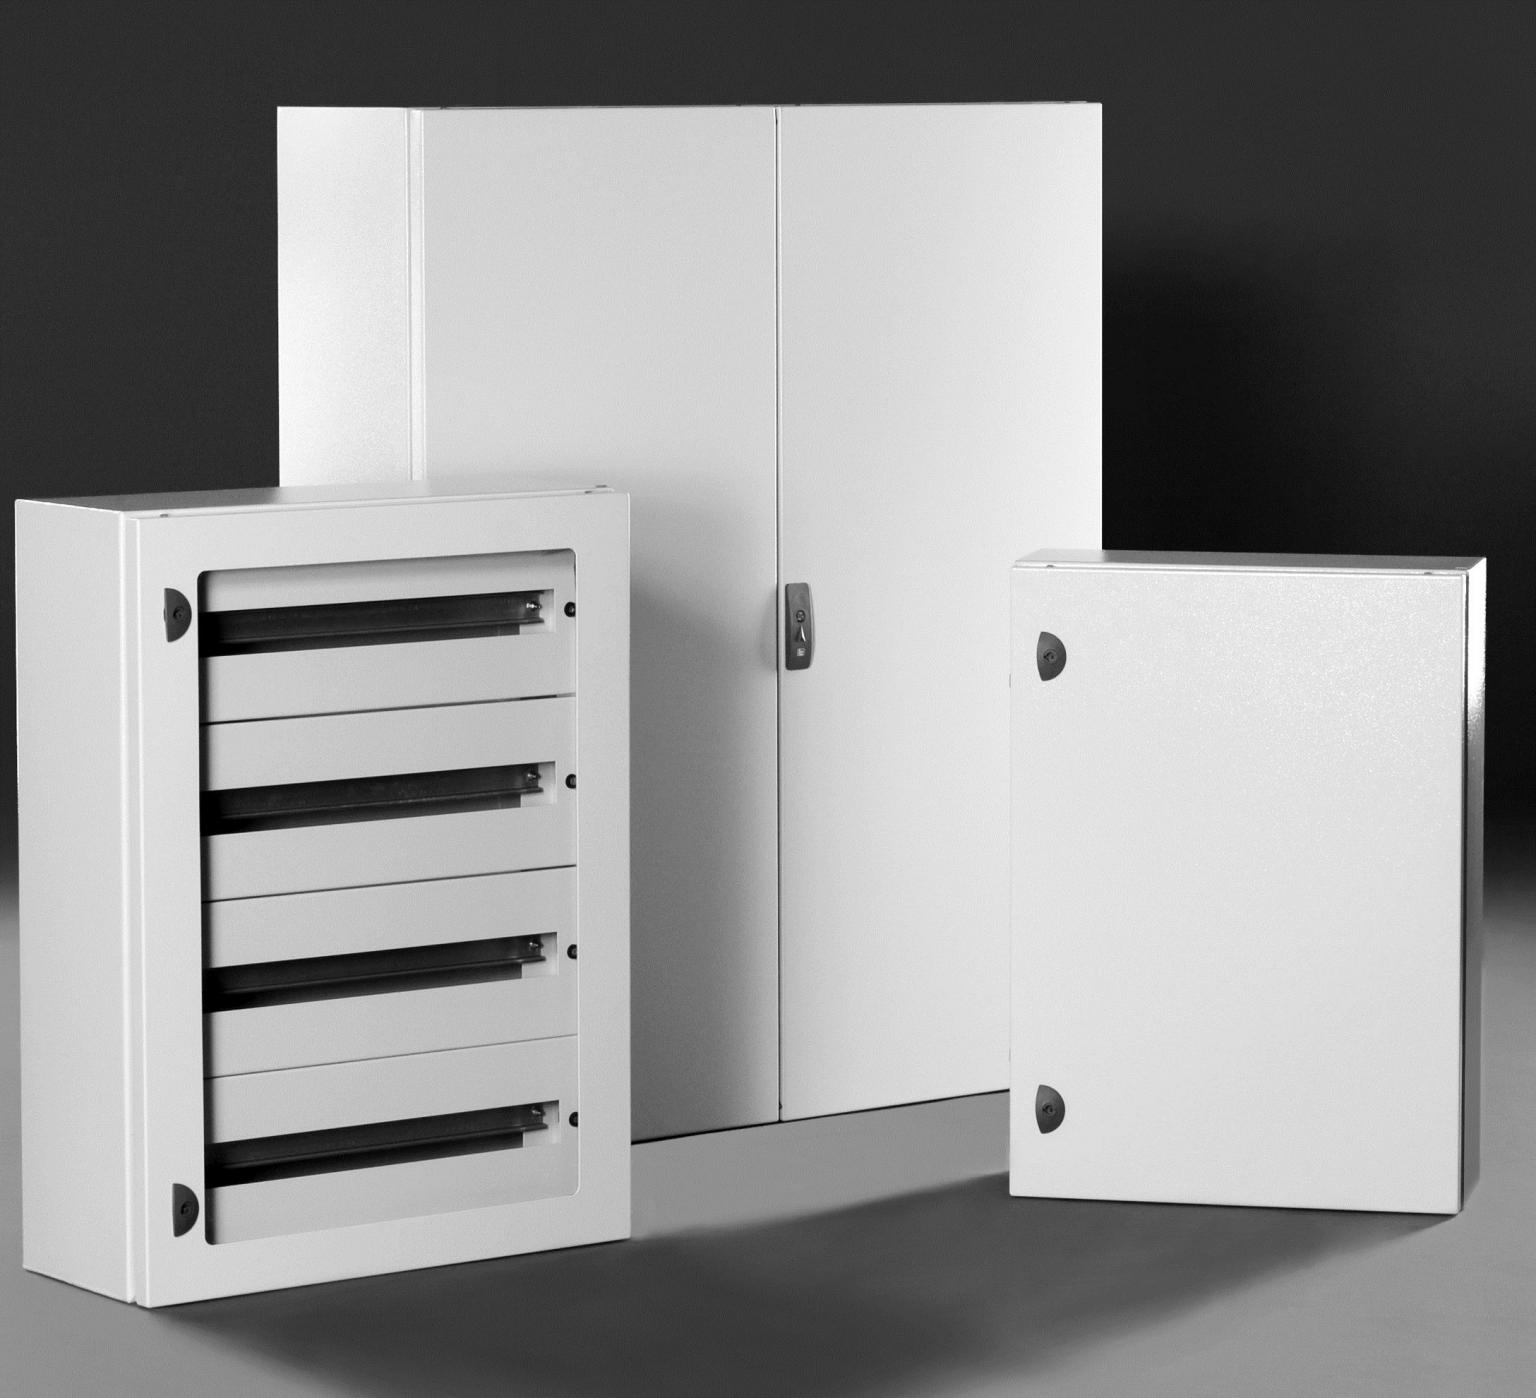 Spelsberg UK has launched a range of steel enclosures